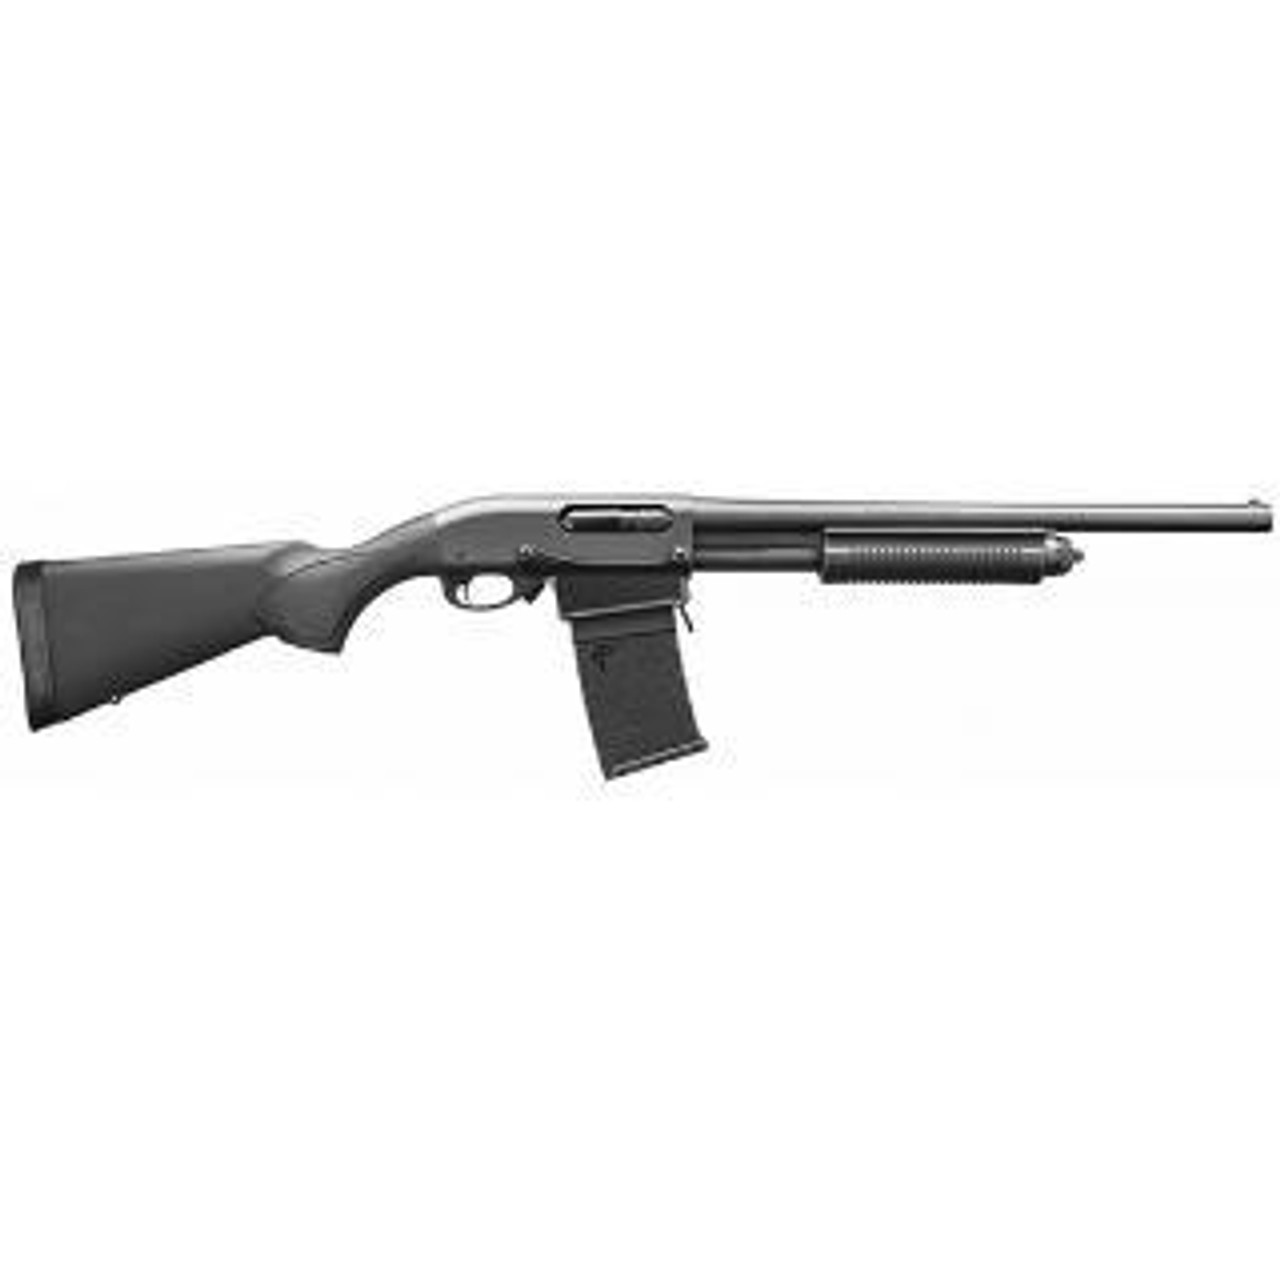 Remington 870 DM CALIFORNIA LEGAL - 12GA